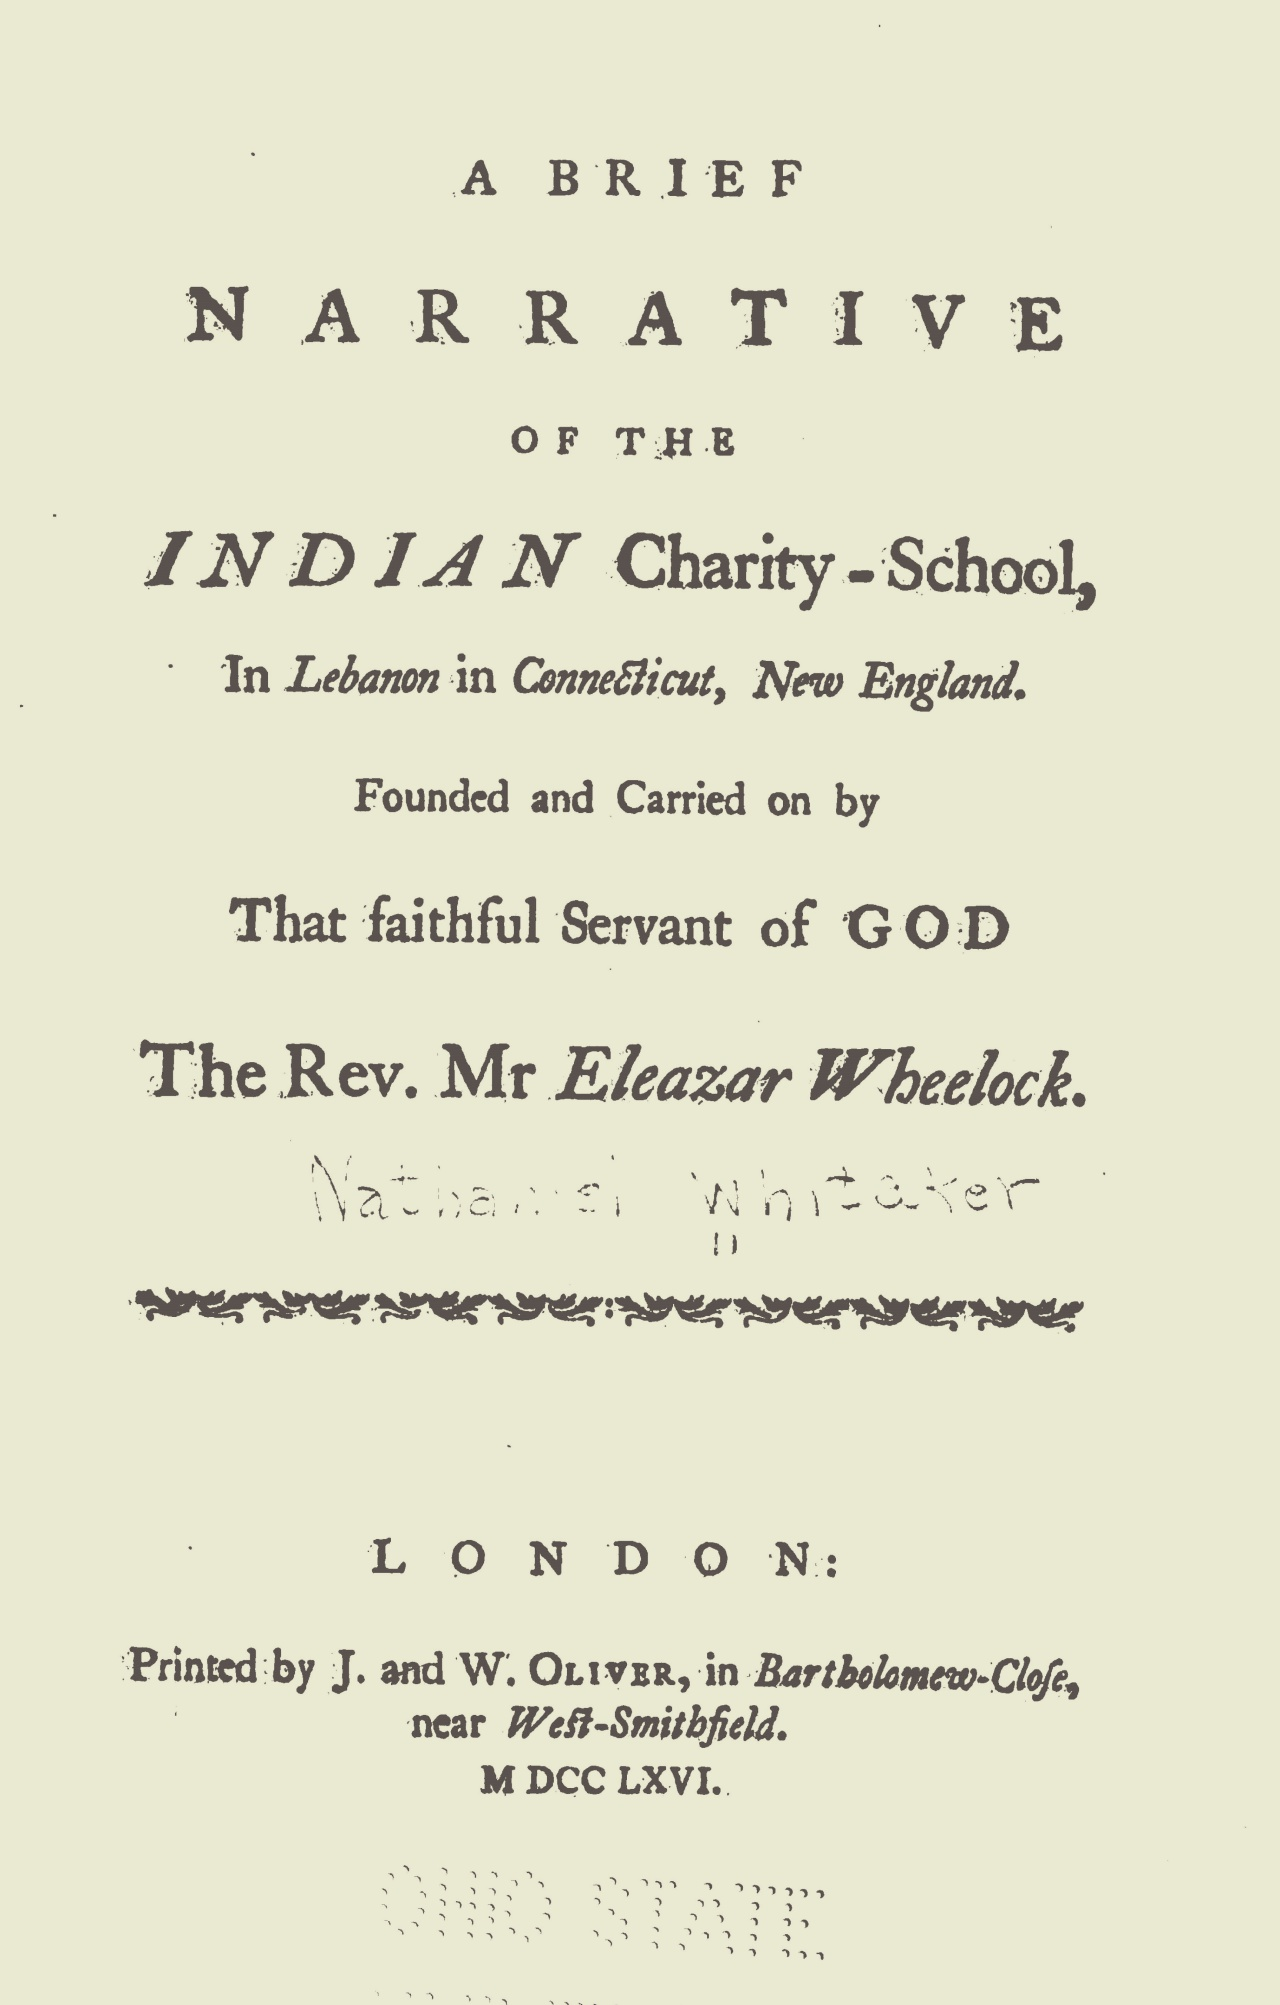 Whitaker, Nathaniel, A Brief Narrative of the Indian Charity-School Title Page.jpg